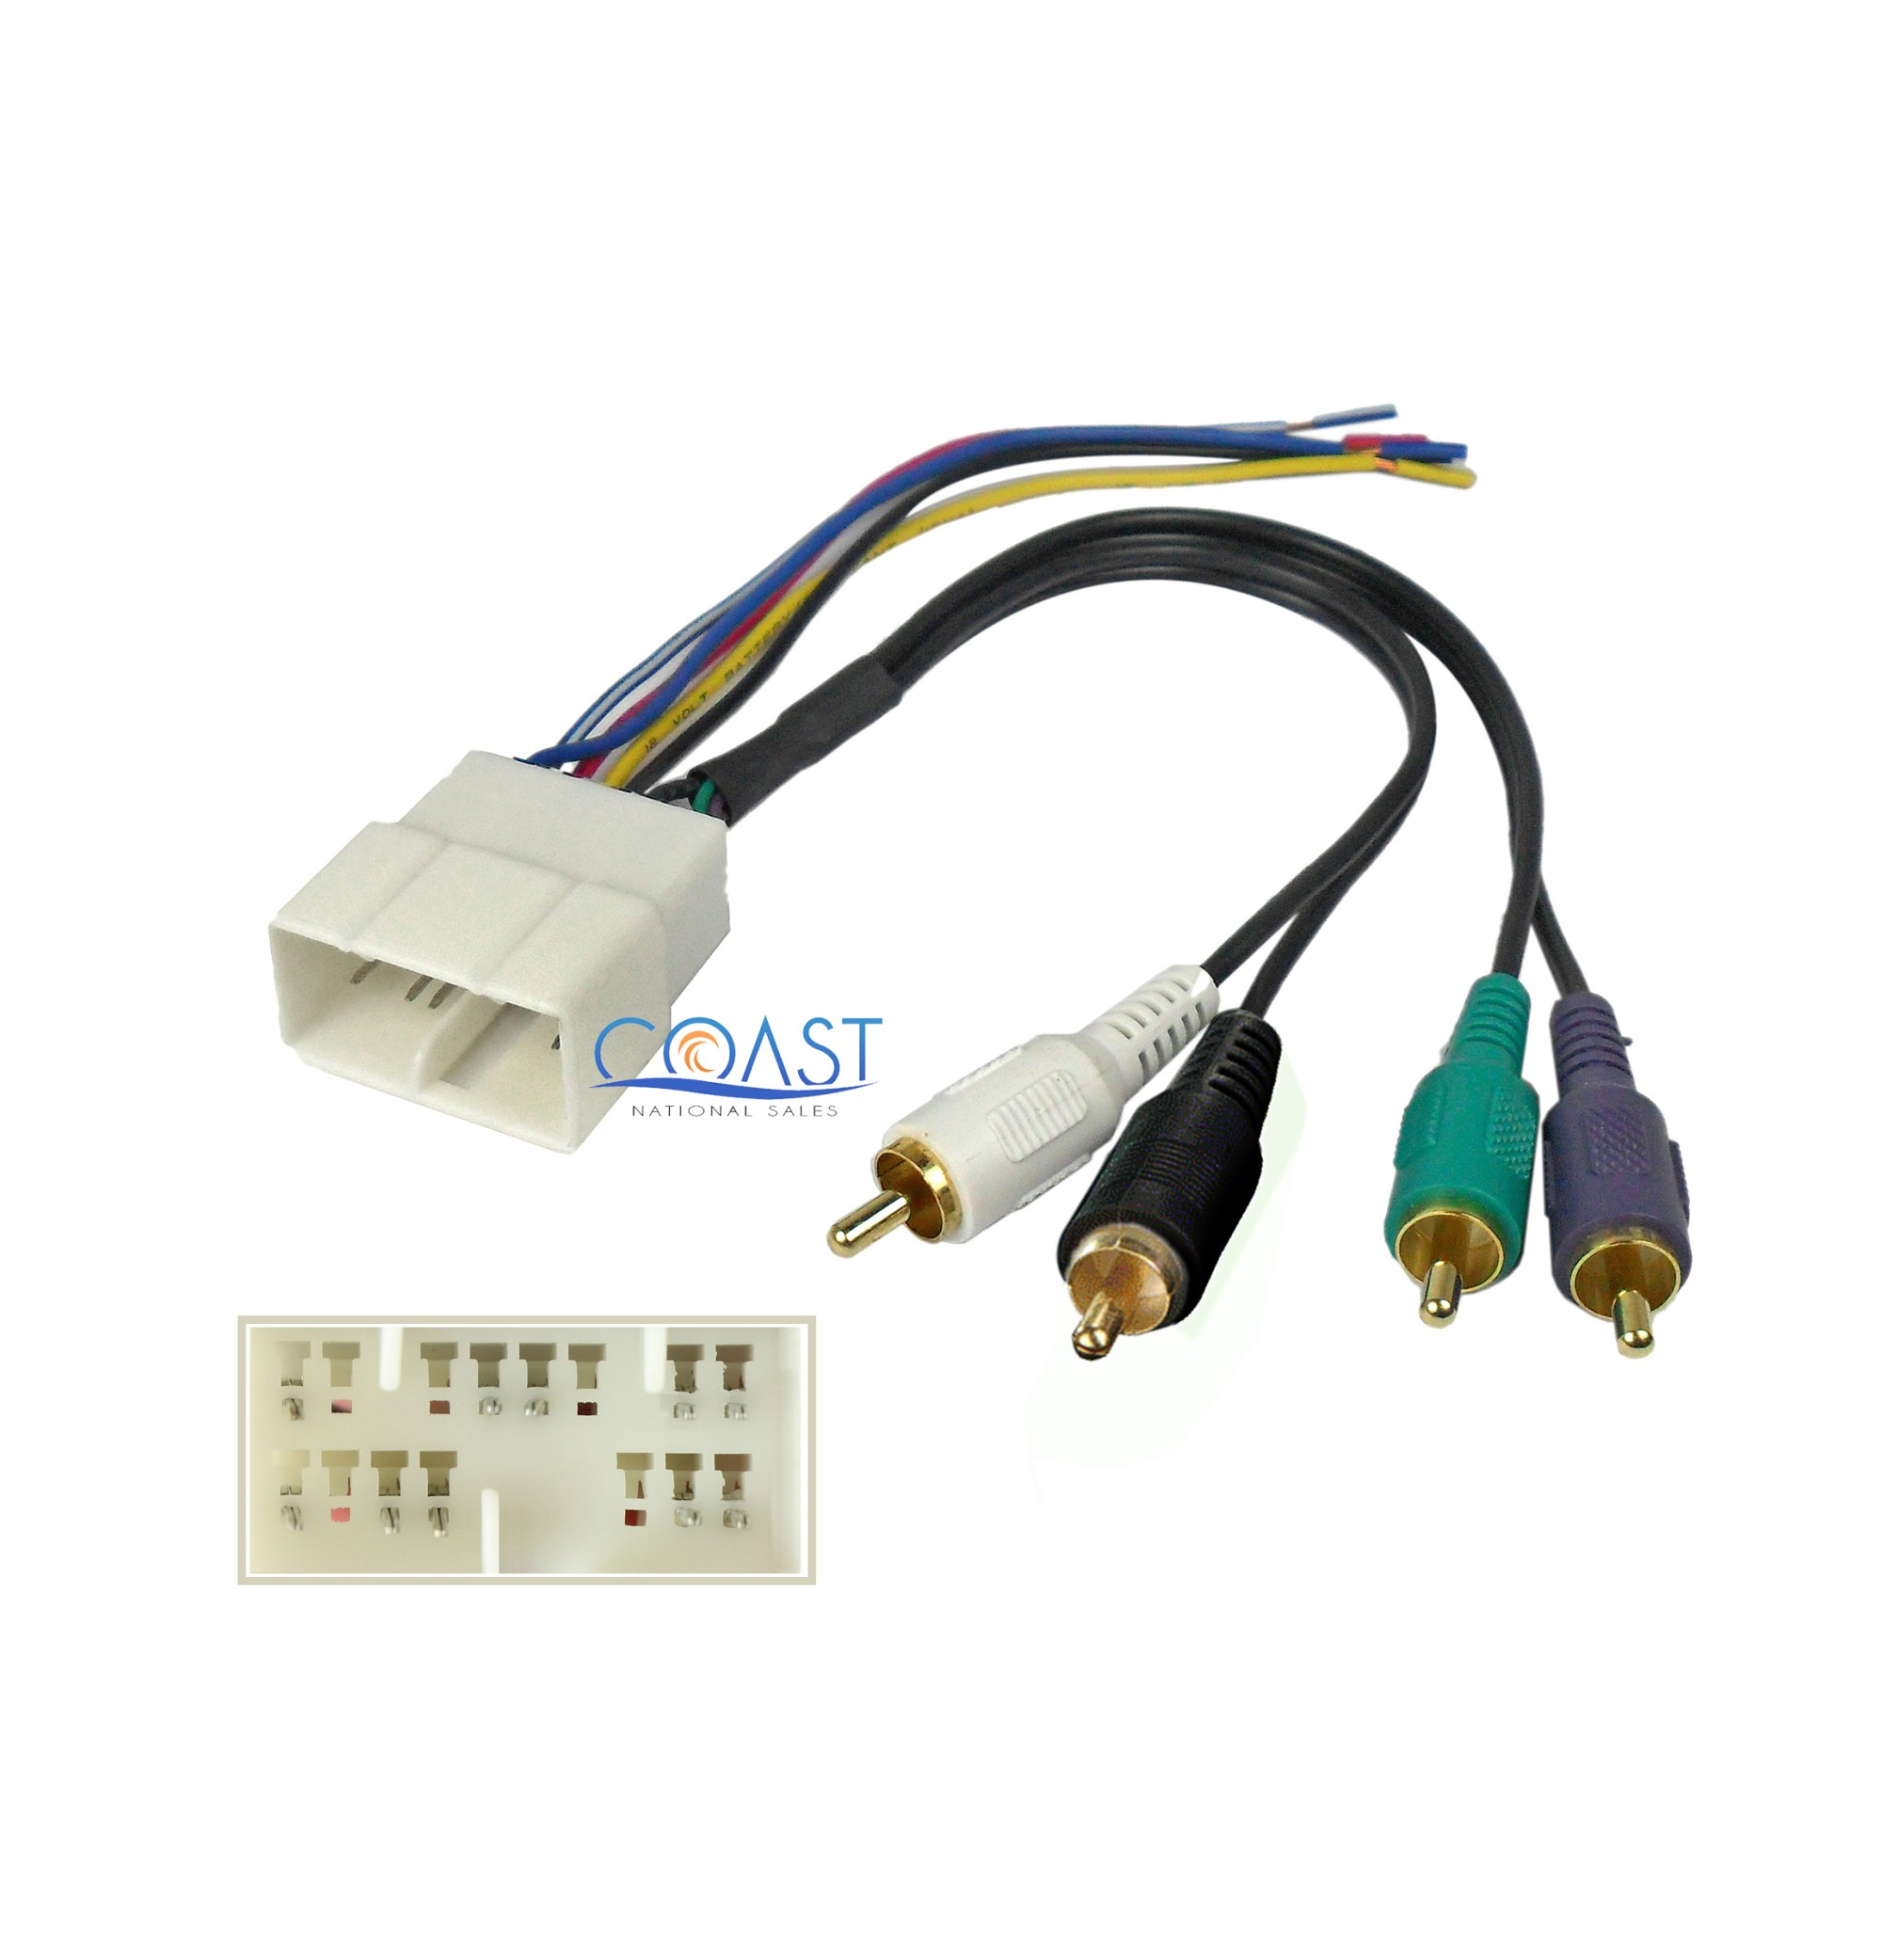 hight resolution of car stereo radio amplifier wiring harness for select 1992 lexus radio wiring diagram lexus is200 radio wiring harness